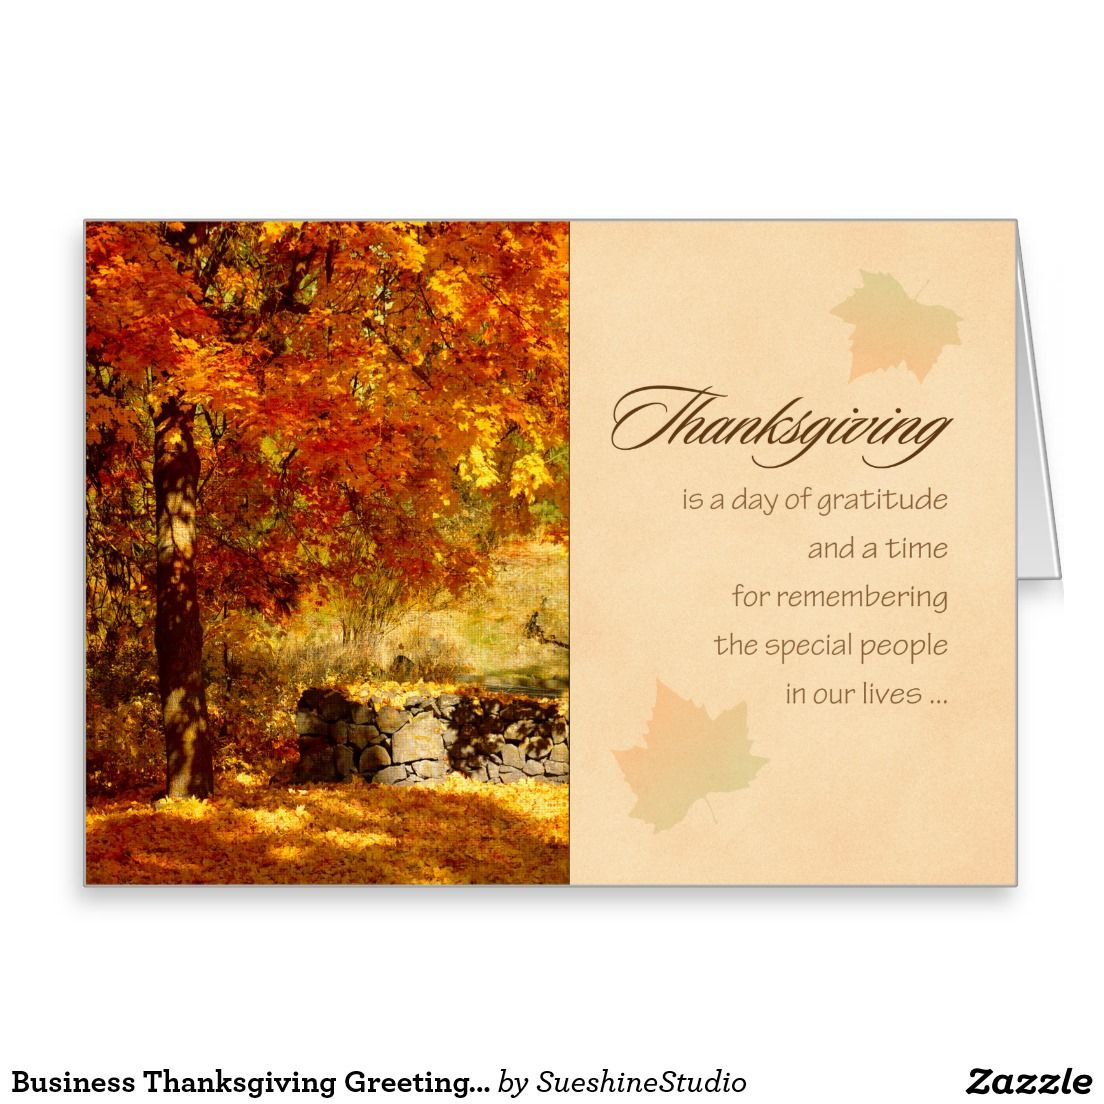 Business Thanksgiving Greeting Card | Thanksgiving greeting cards ...